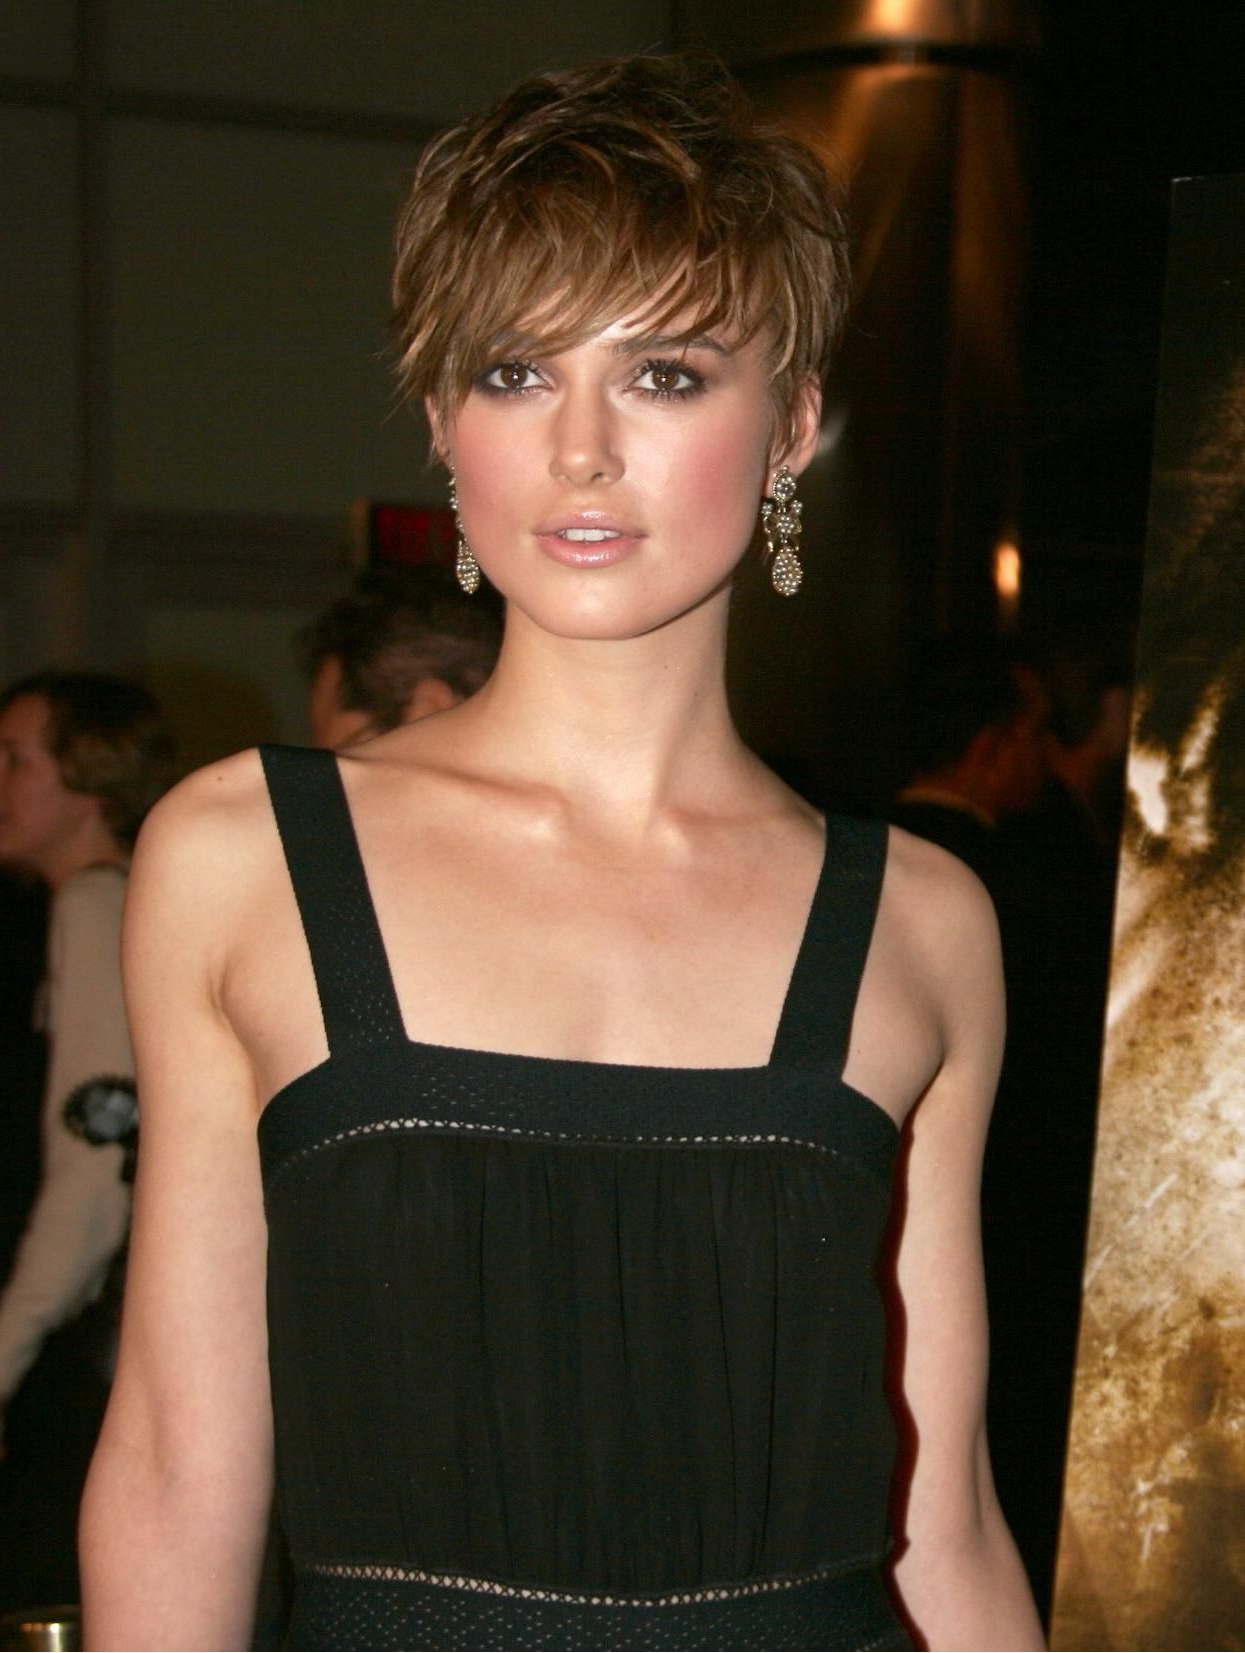 Keira Knightley | Keira Knightley | Pinterest | Hair, Short Hair Intended For Keira Knightley Short Haircuts (View 16 of 25)